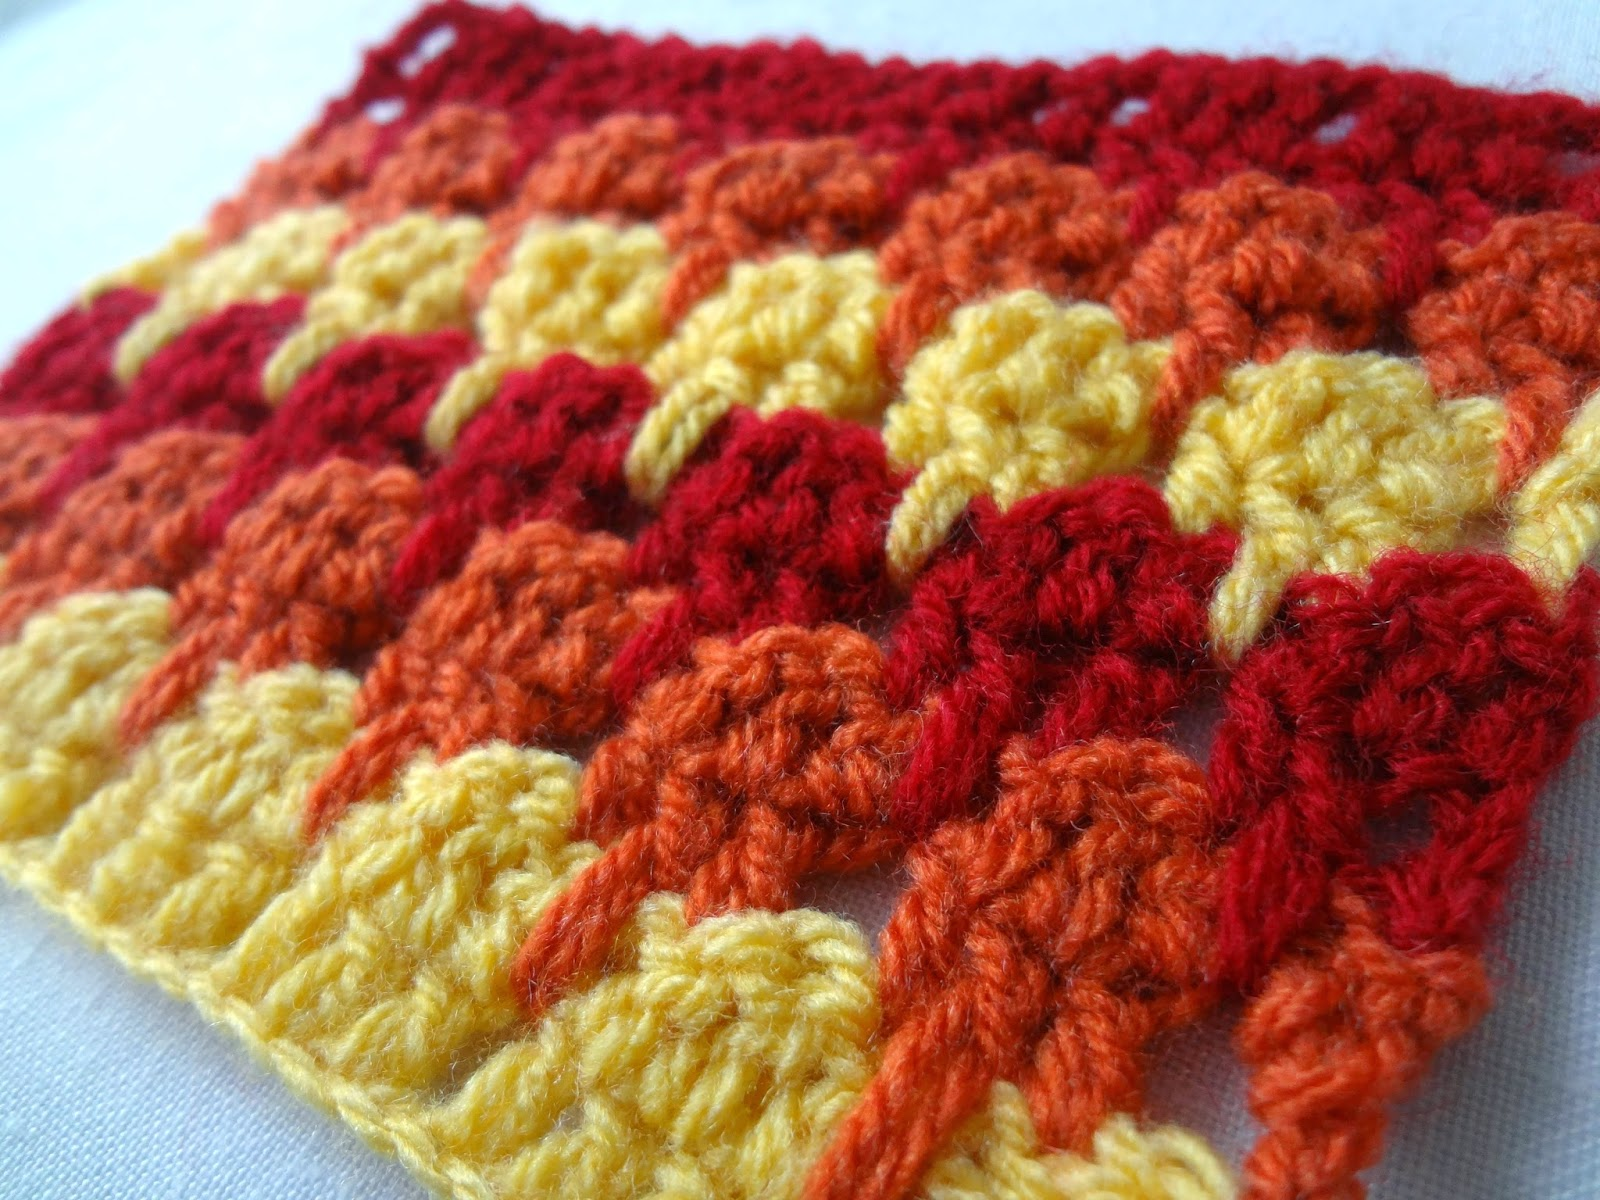 Crochet Stitches Larksfoot : ... : Larksfoot Crochet Stitch Pattern (or the Icicle Stitch) Demistified